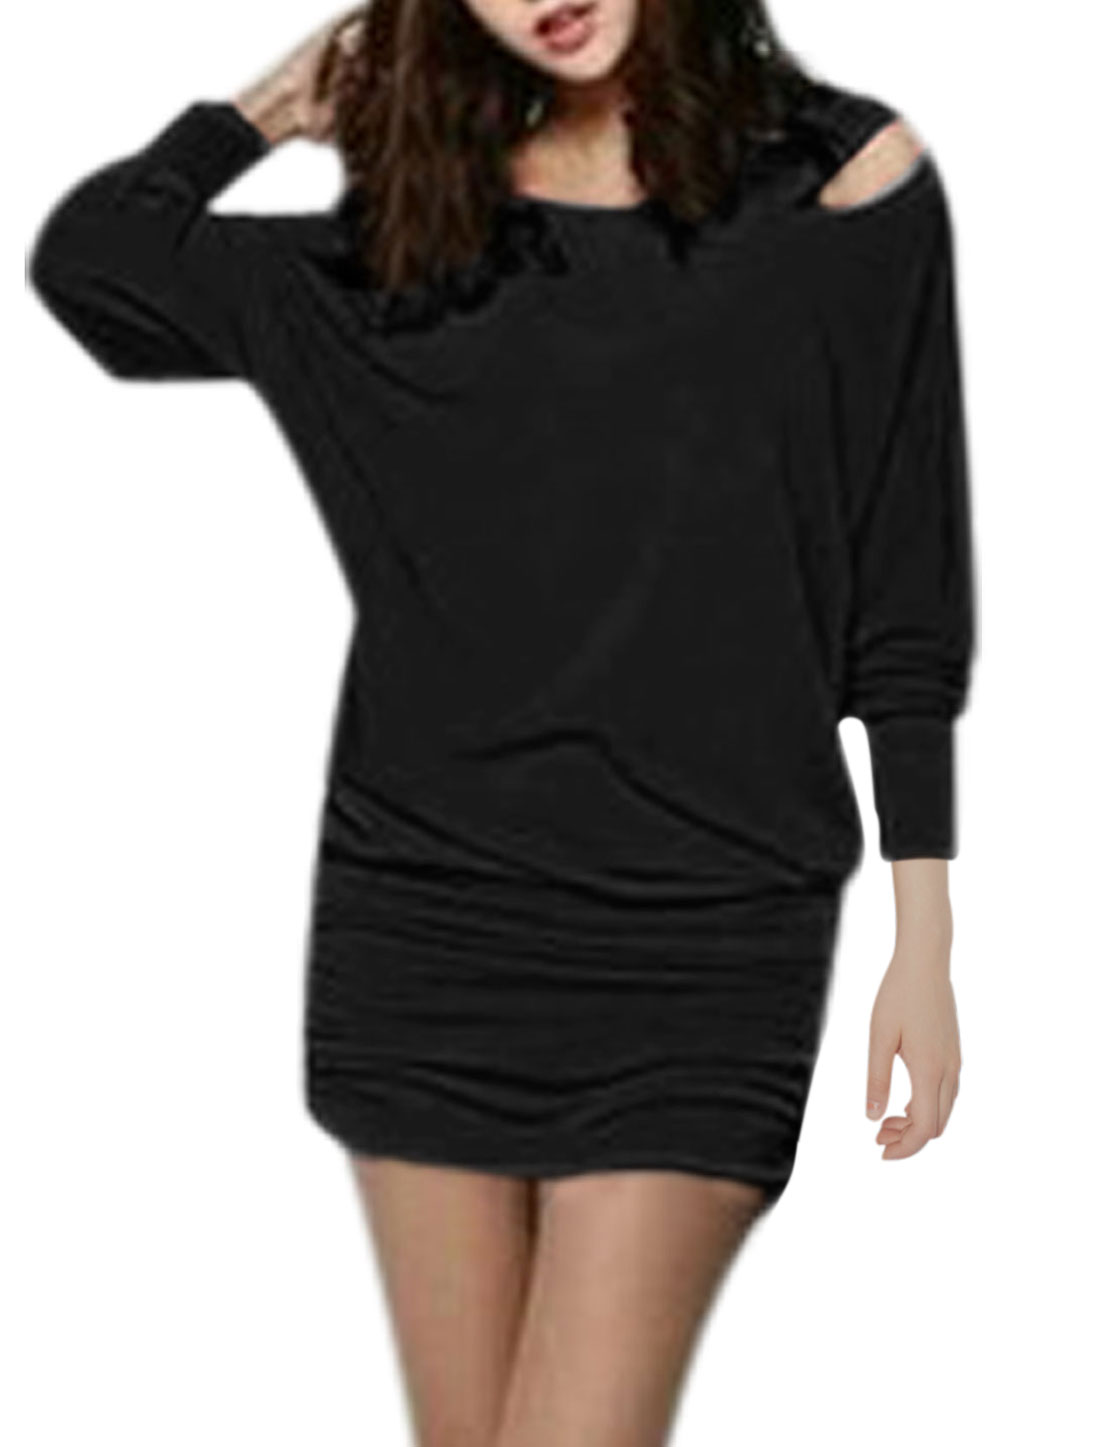 Women Round Neck Batwing Sleeve Shirred Sides Sexy Blouson Dress Black S